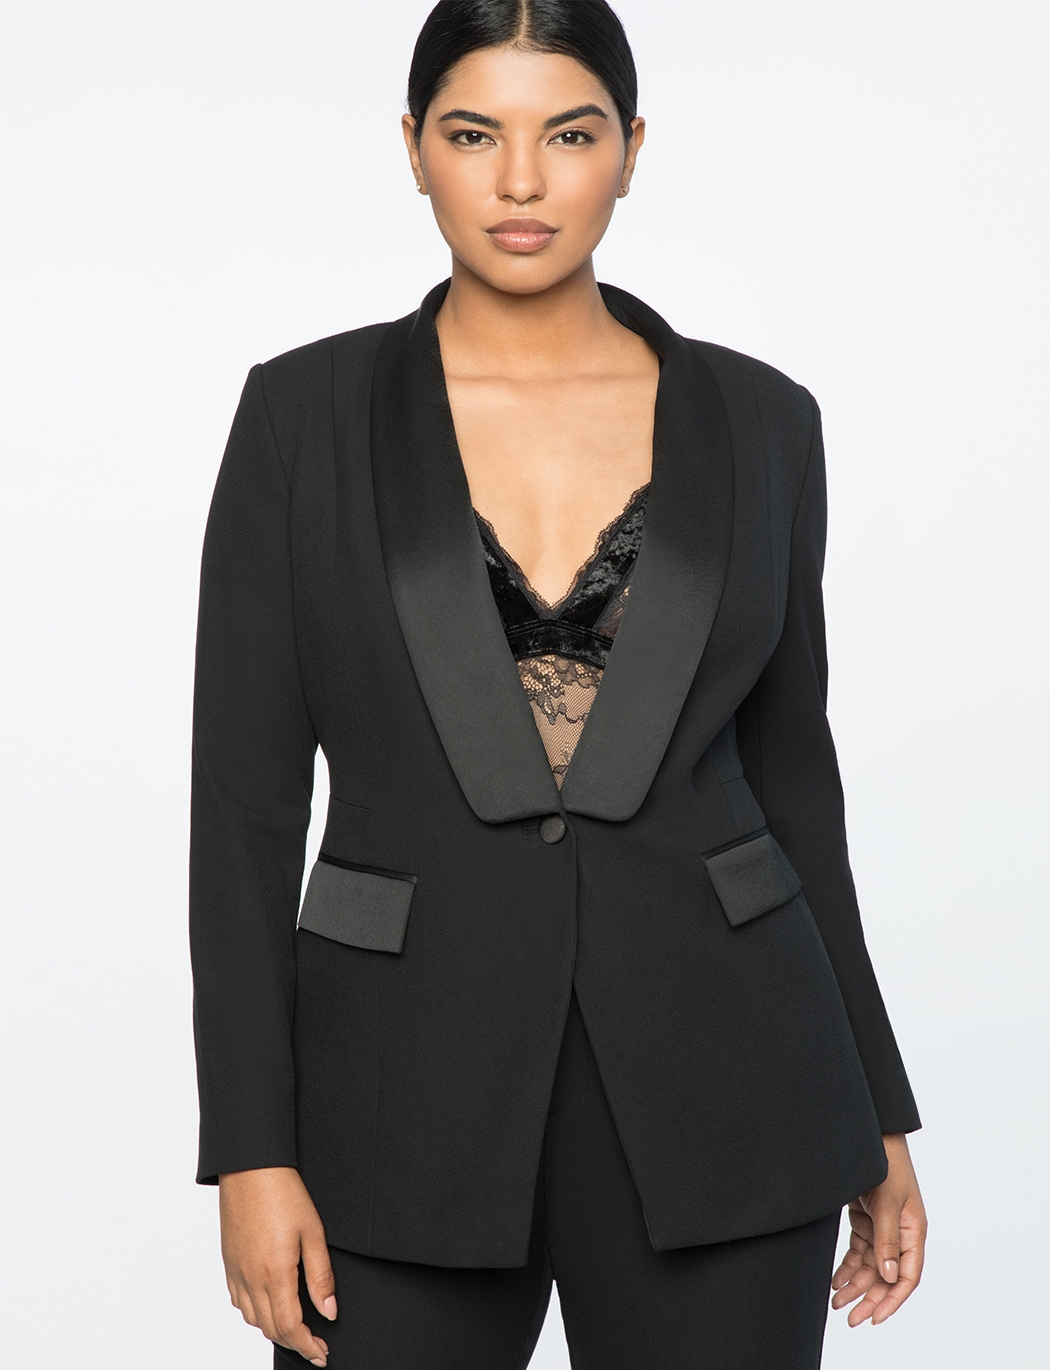 94a22393bb8ef Best of 2018  A Review of the Plus Size Fashion Highlights for the Year!